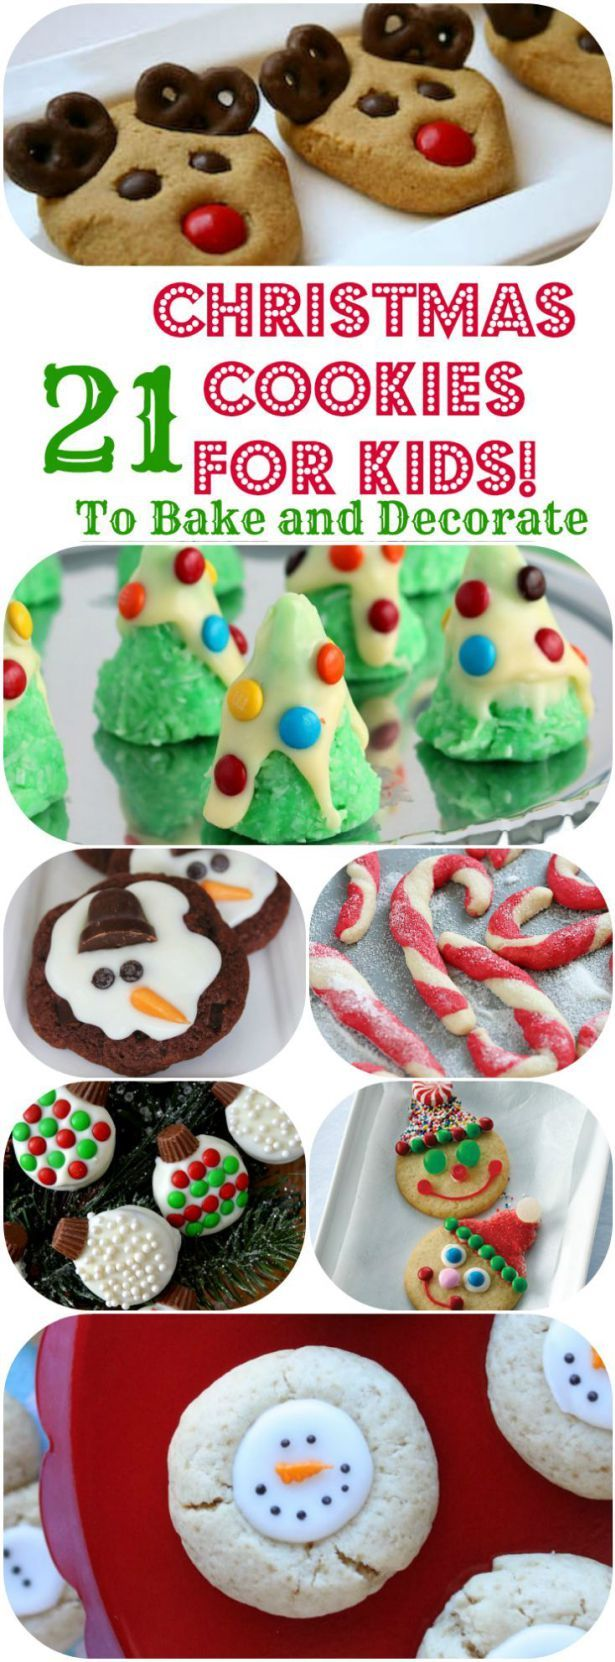 21 Christmas Cookies for Kids! To Bake and Decorate!! Fun and Easy Christmas Cookie Recipes you will LOVE baking and decorating with your kids!: